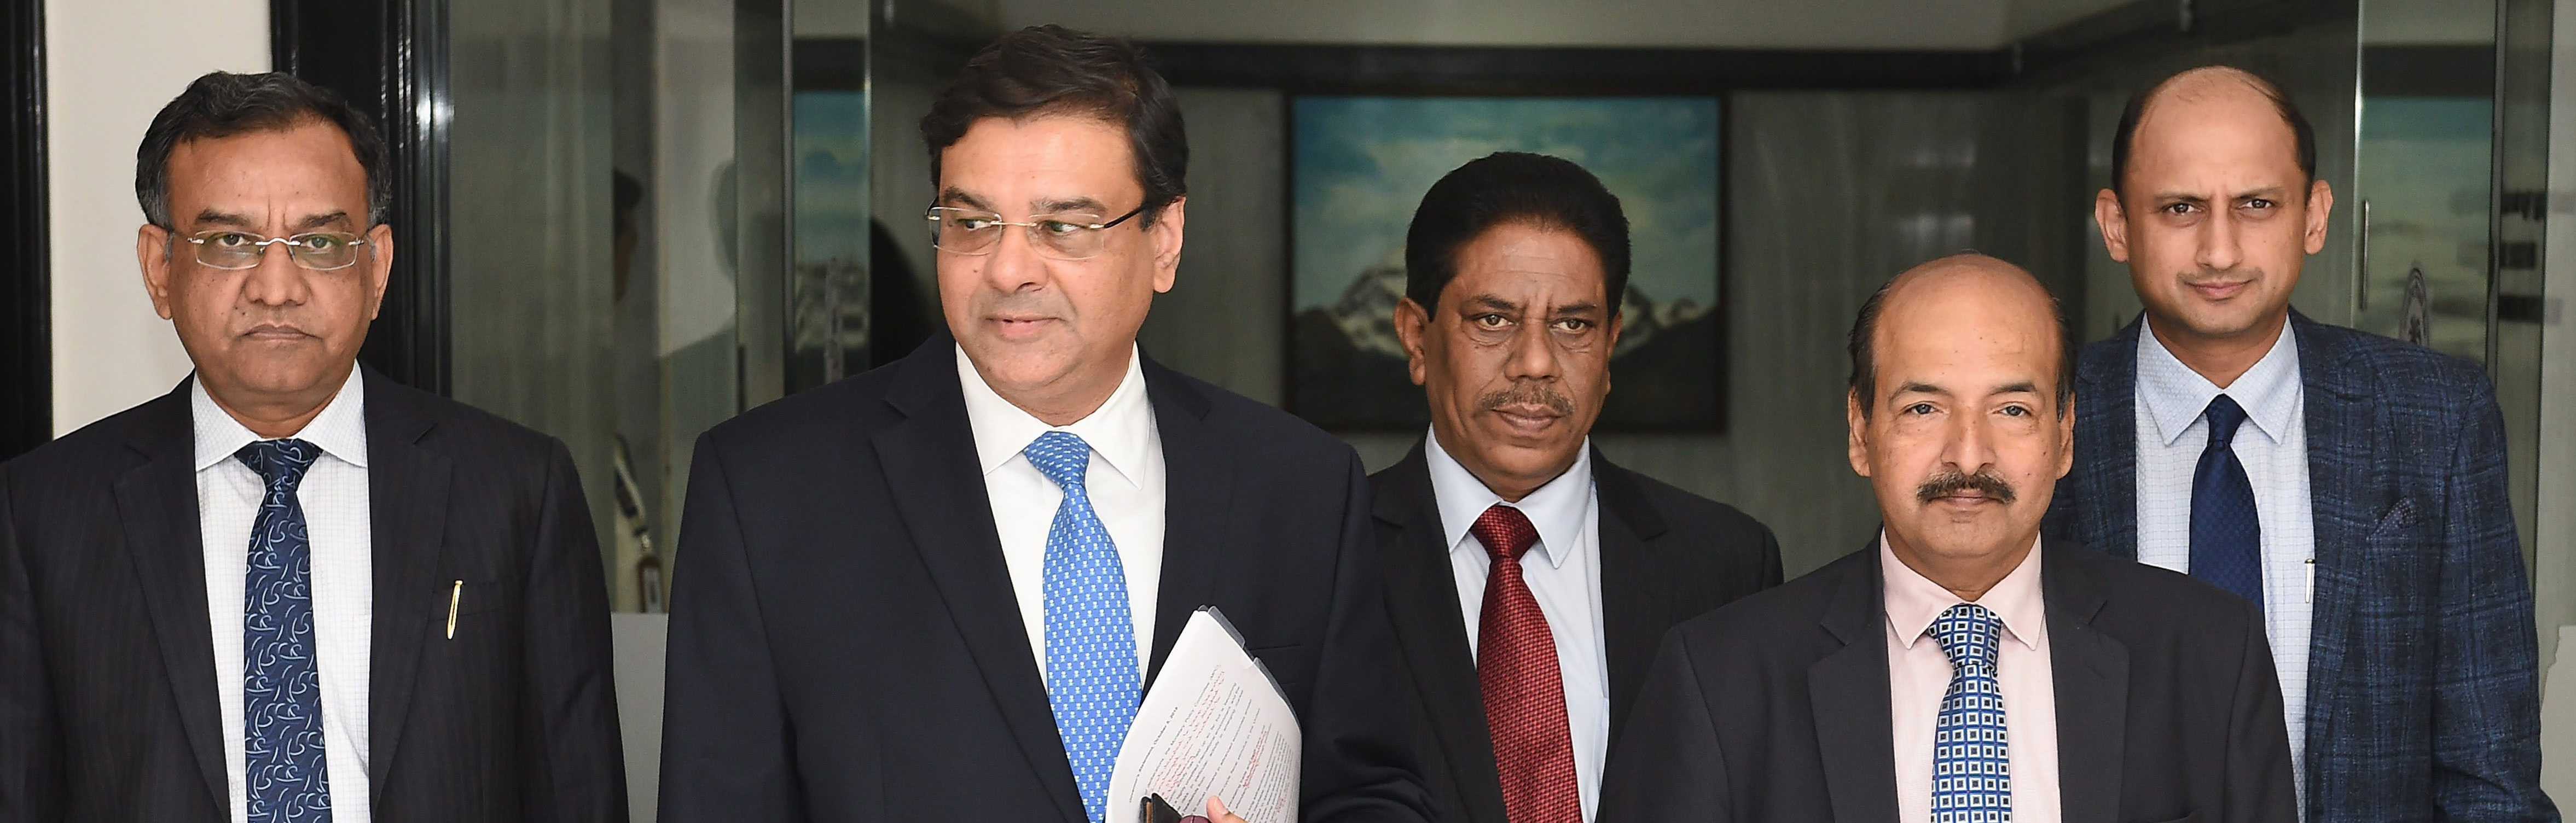 RBI Governor Urjit Patel (left) with deputy governors arrive for a post-monetary policy press conference, in Mumbai on Friday.